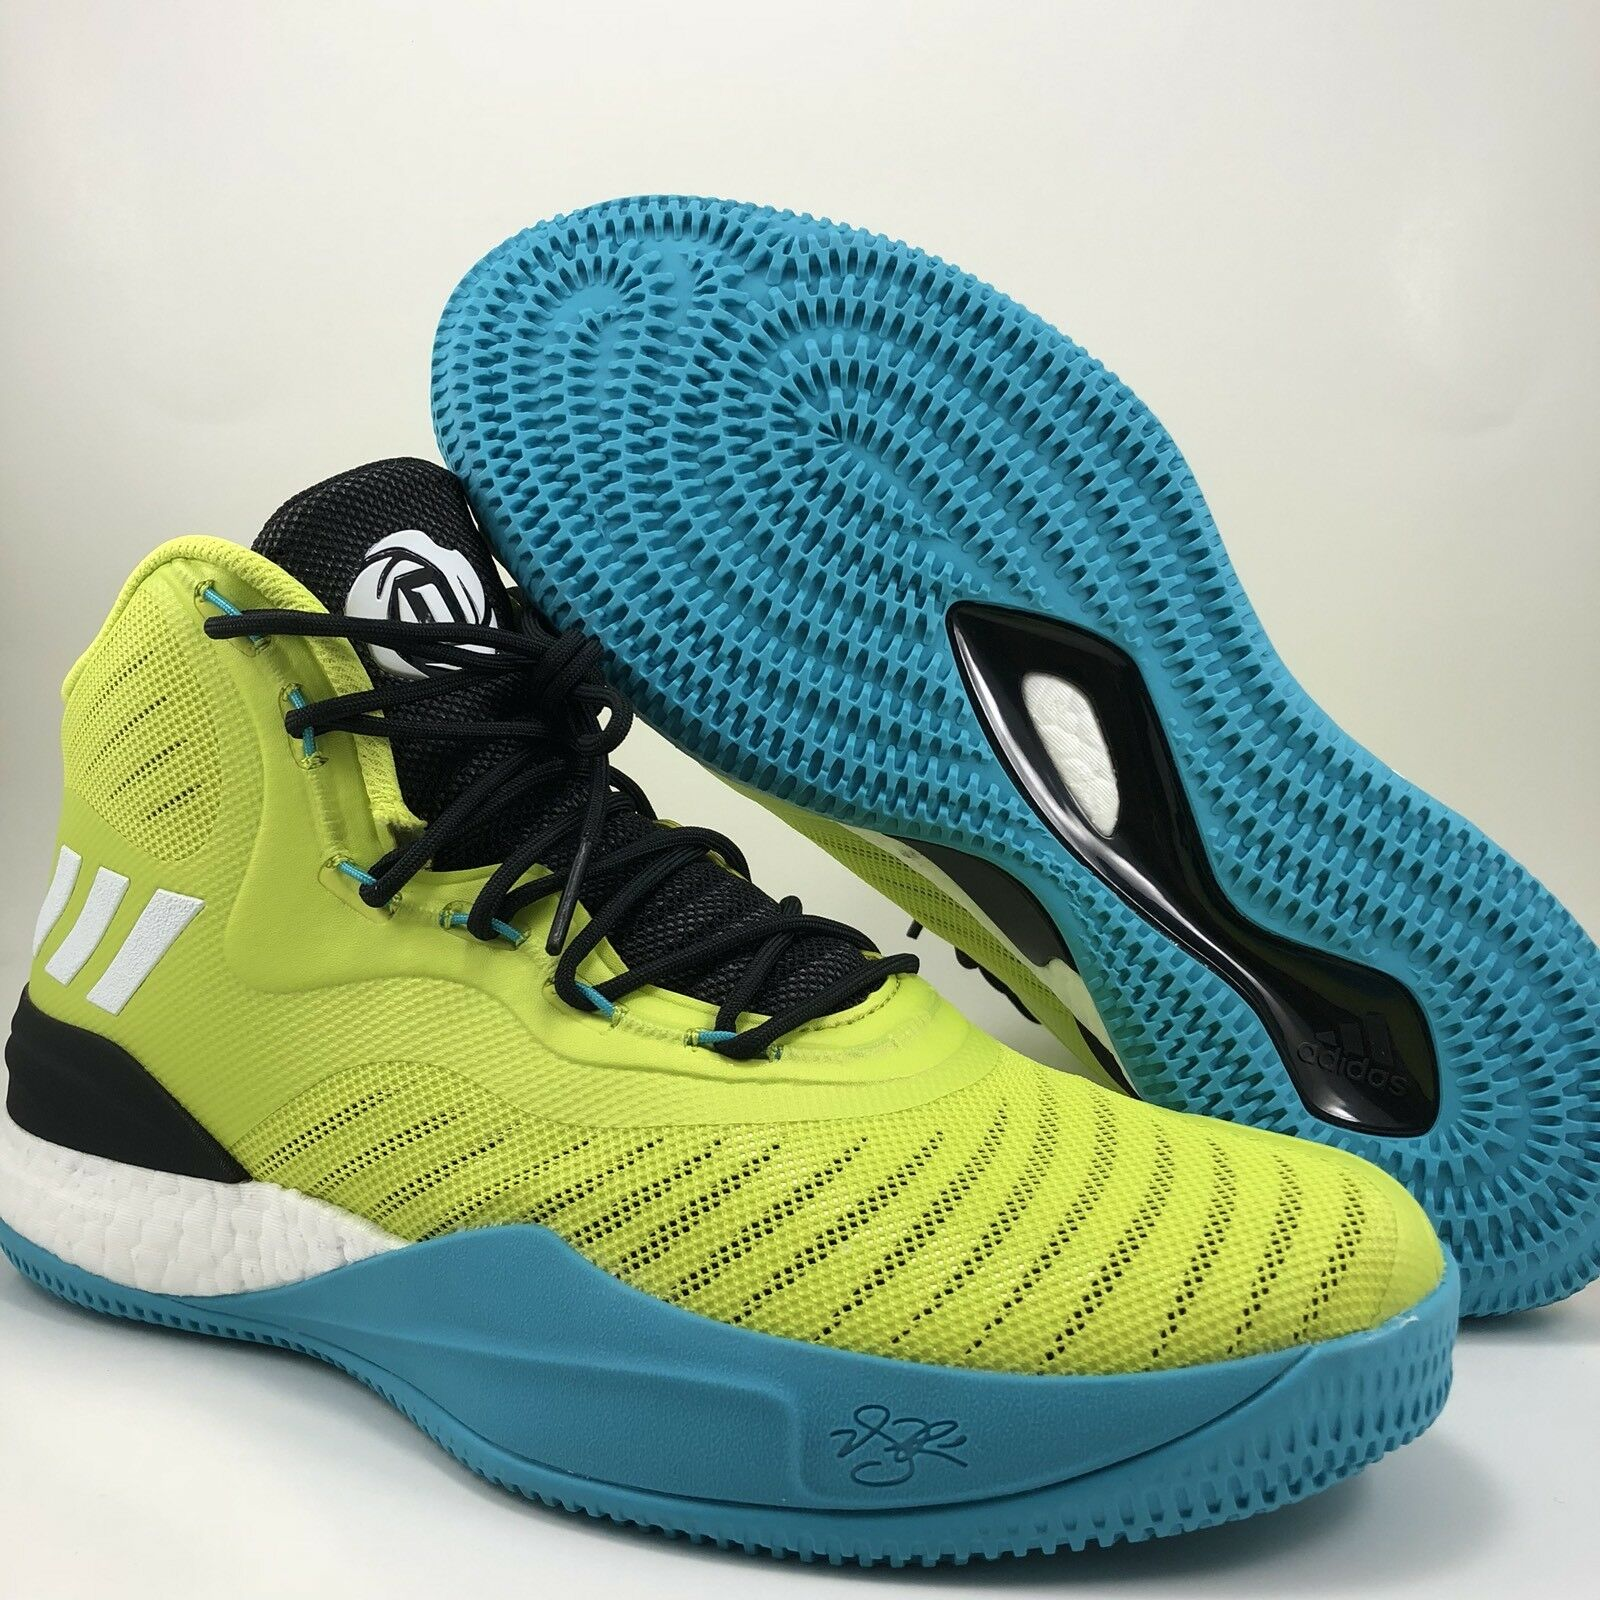 Adidas D Rose Volt Black  Basketball Shoes Mens Size 11 (CQ0828)